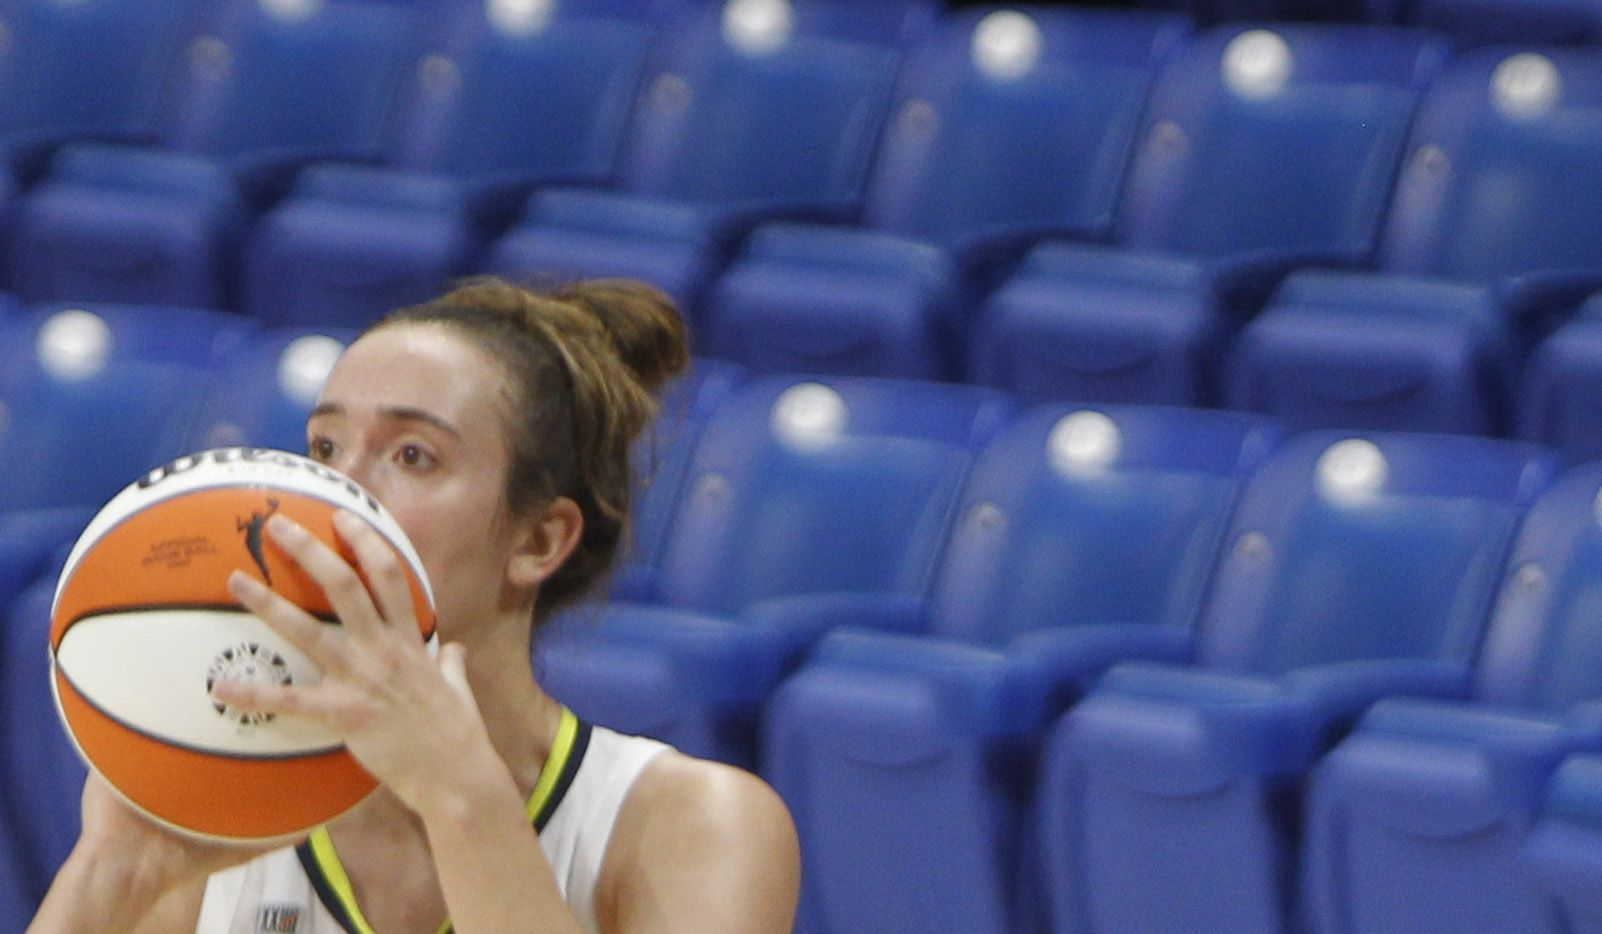 Dallas Wings guard Marina Mabrey (3) eyes the basket before launching an uncontested 3-pointer during first half action against Phoenix. The Dallas Wings hosted the Phoenix Mercury for their WNBA game held at UTA's College Park Center in Arlington on May 29, 2021.